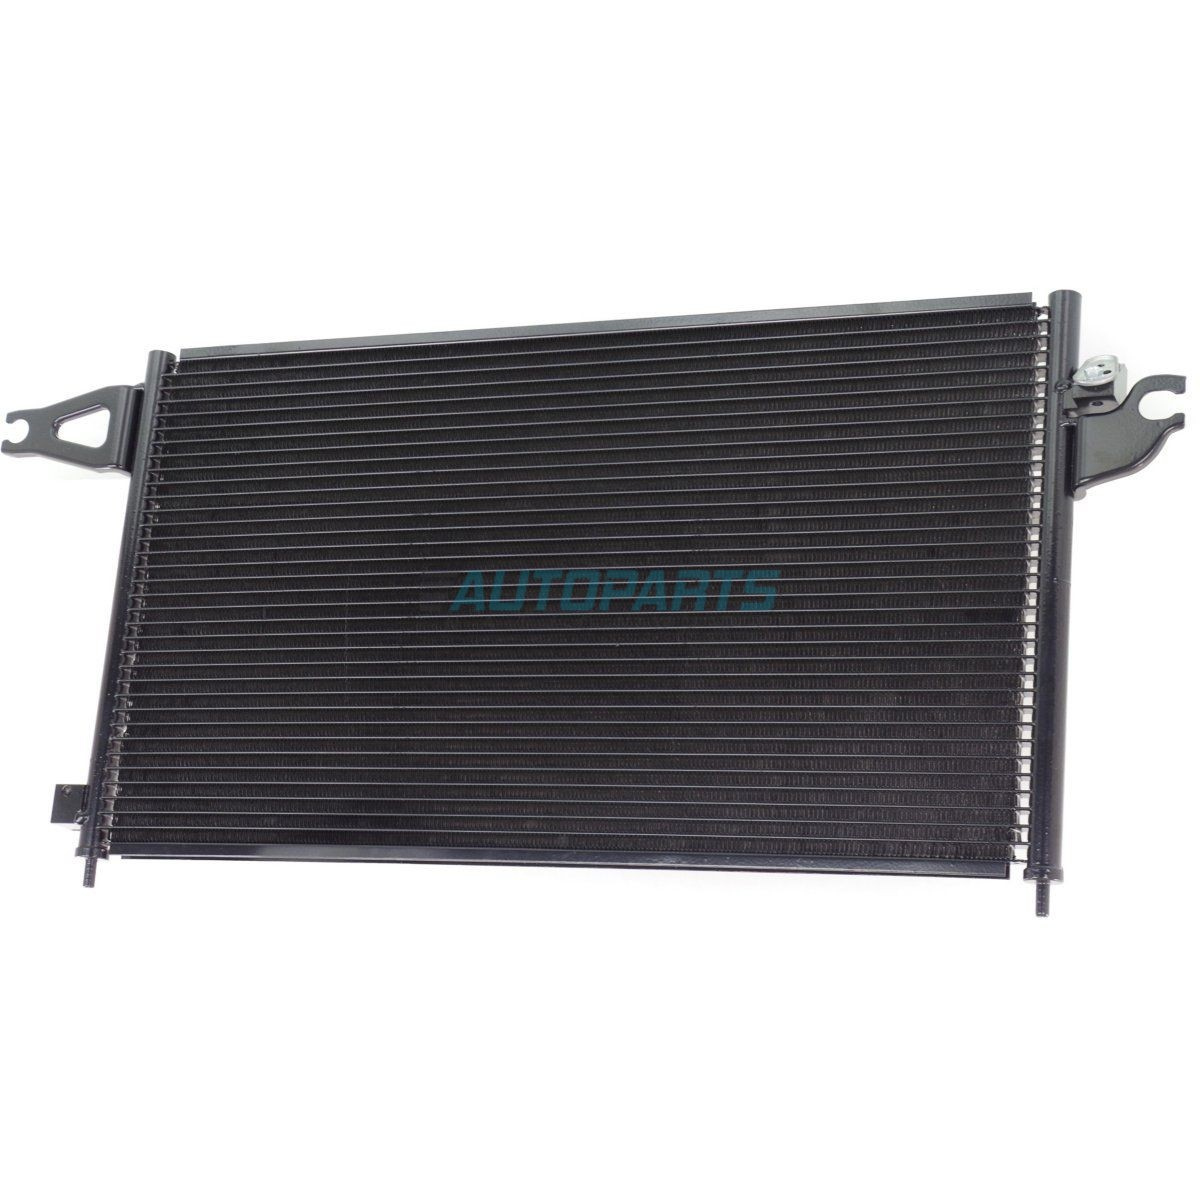 NEW AC CONDENSER FITS 2002-2006 ACURA RSX AC3030117